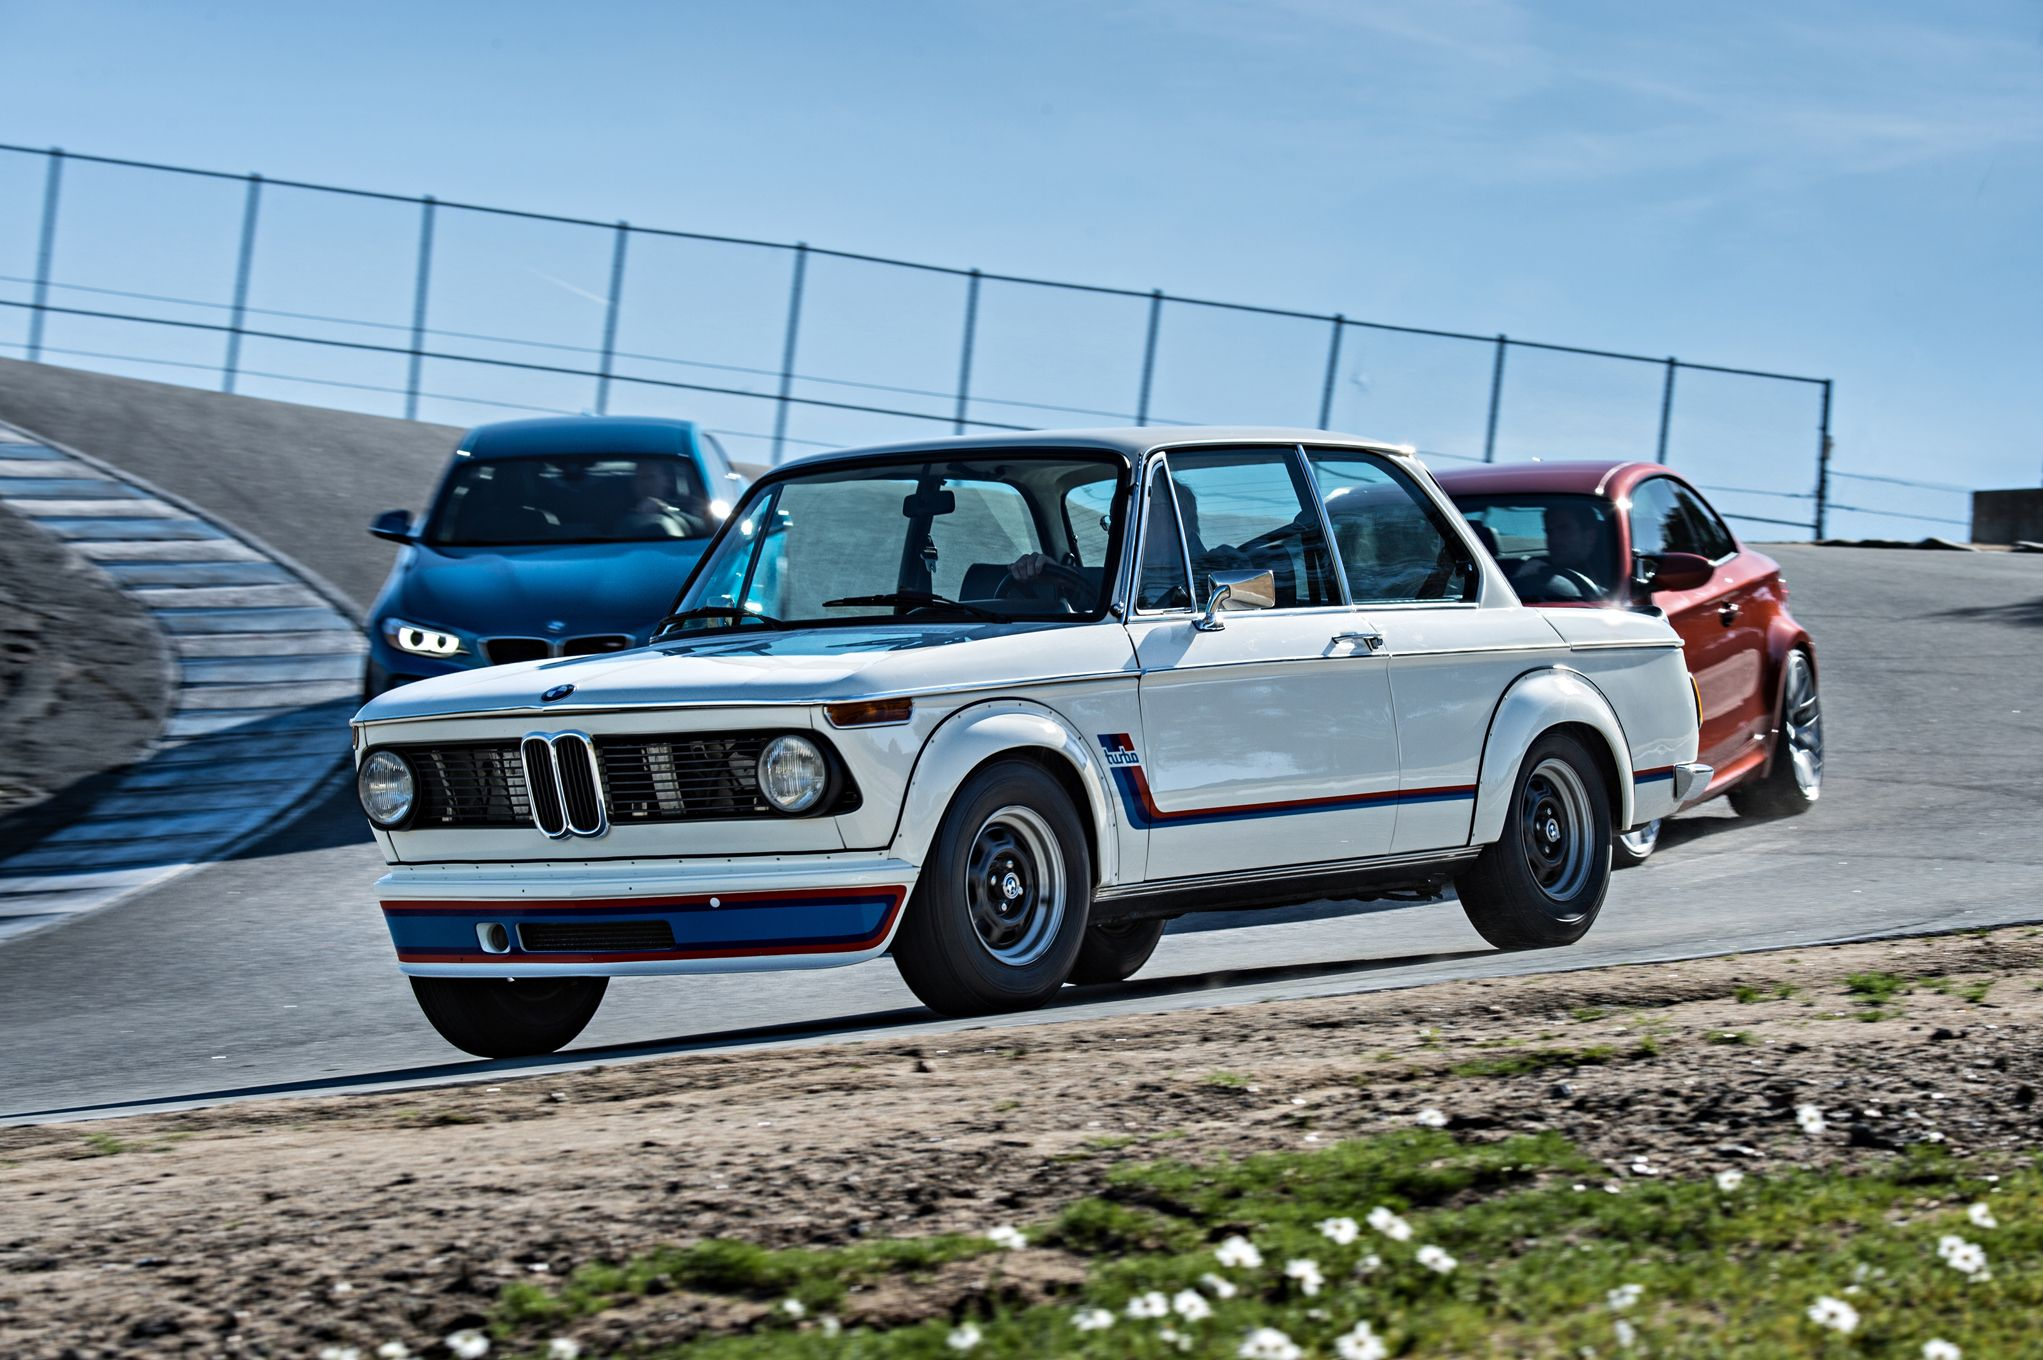 2016-bmw-m2-bmw-2002-turbo-and-bmw-1-series-m-coupe-front-three-quarters-in-motion.jpg